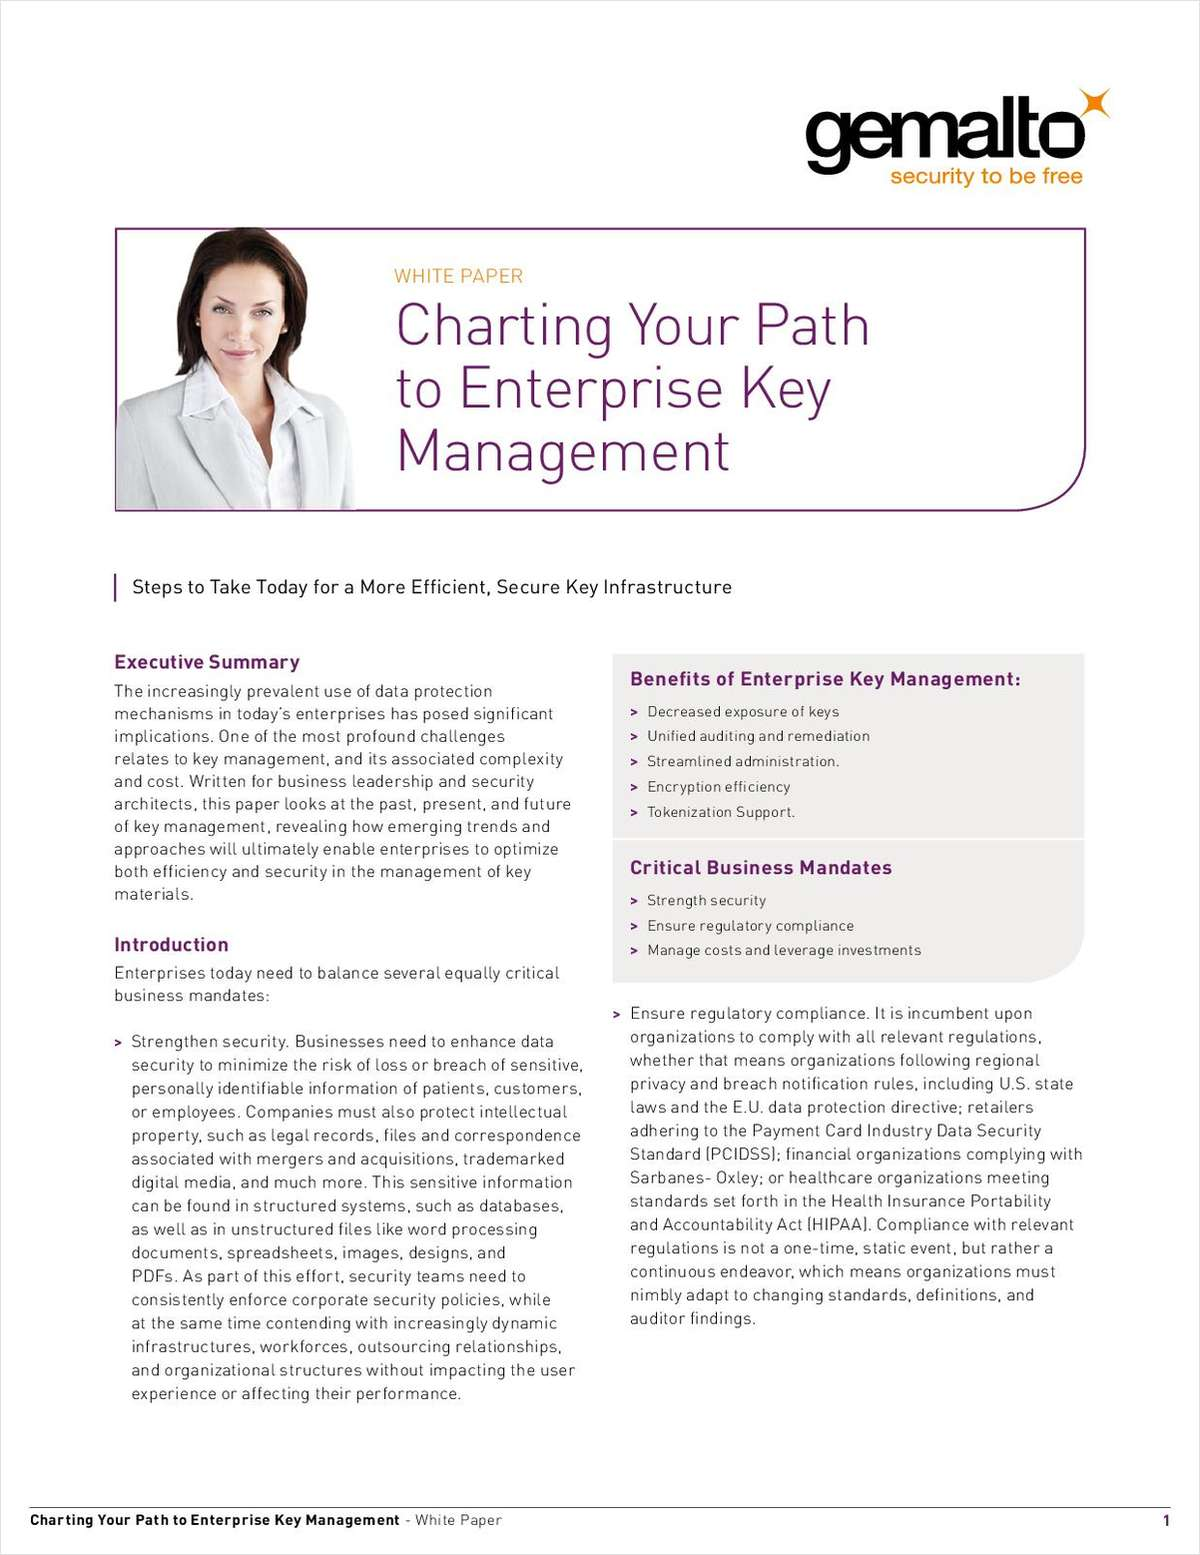 Charting Your Path to Enterprise Key Management